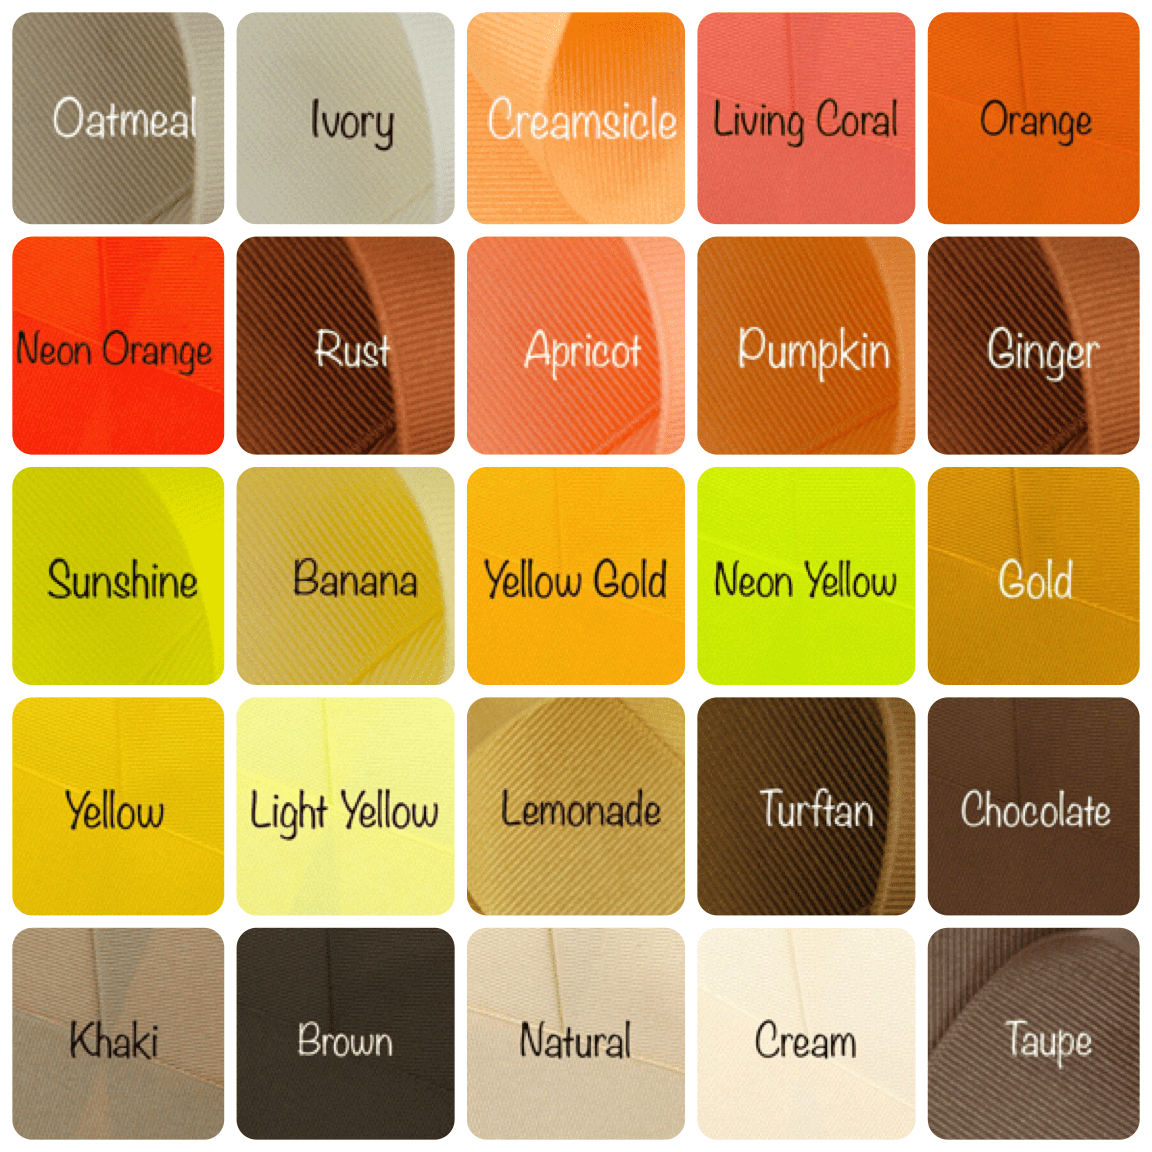 Solid Color Chart 2